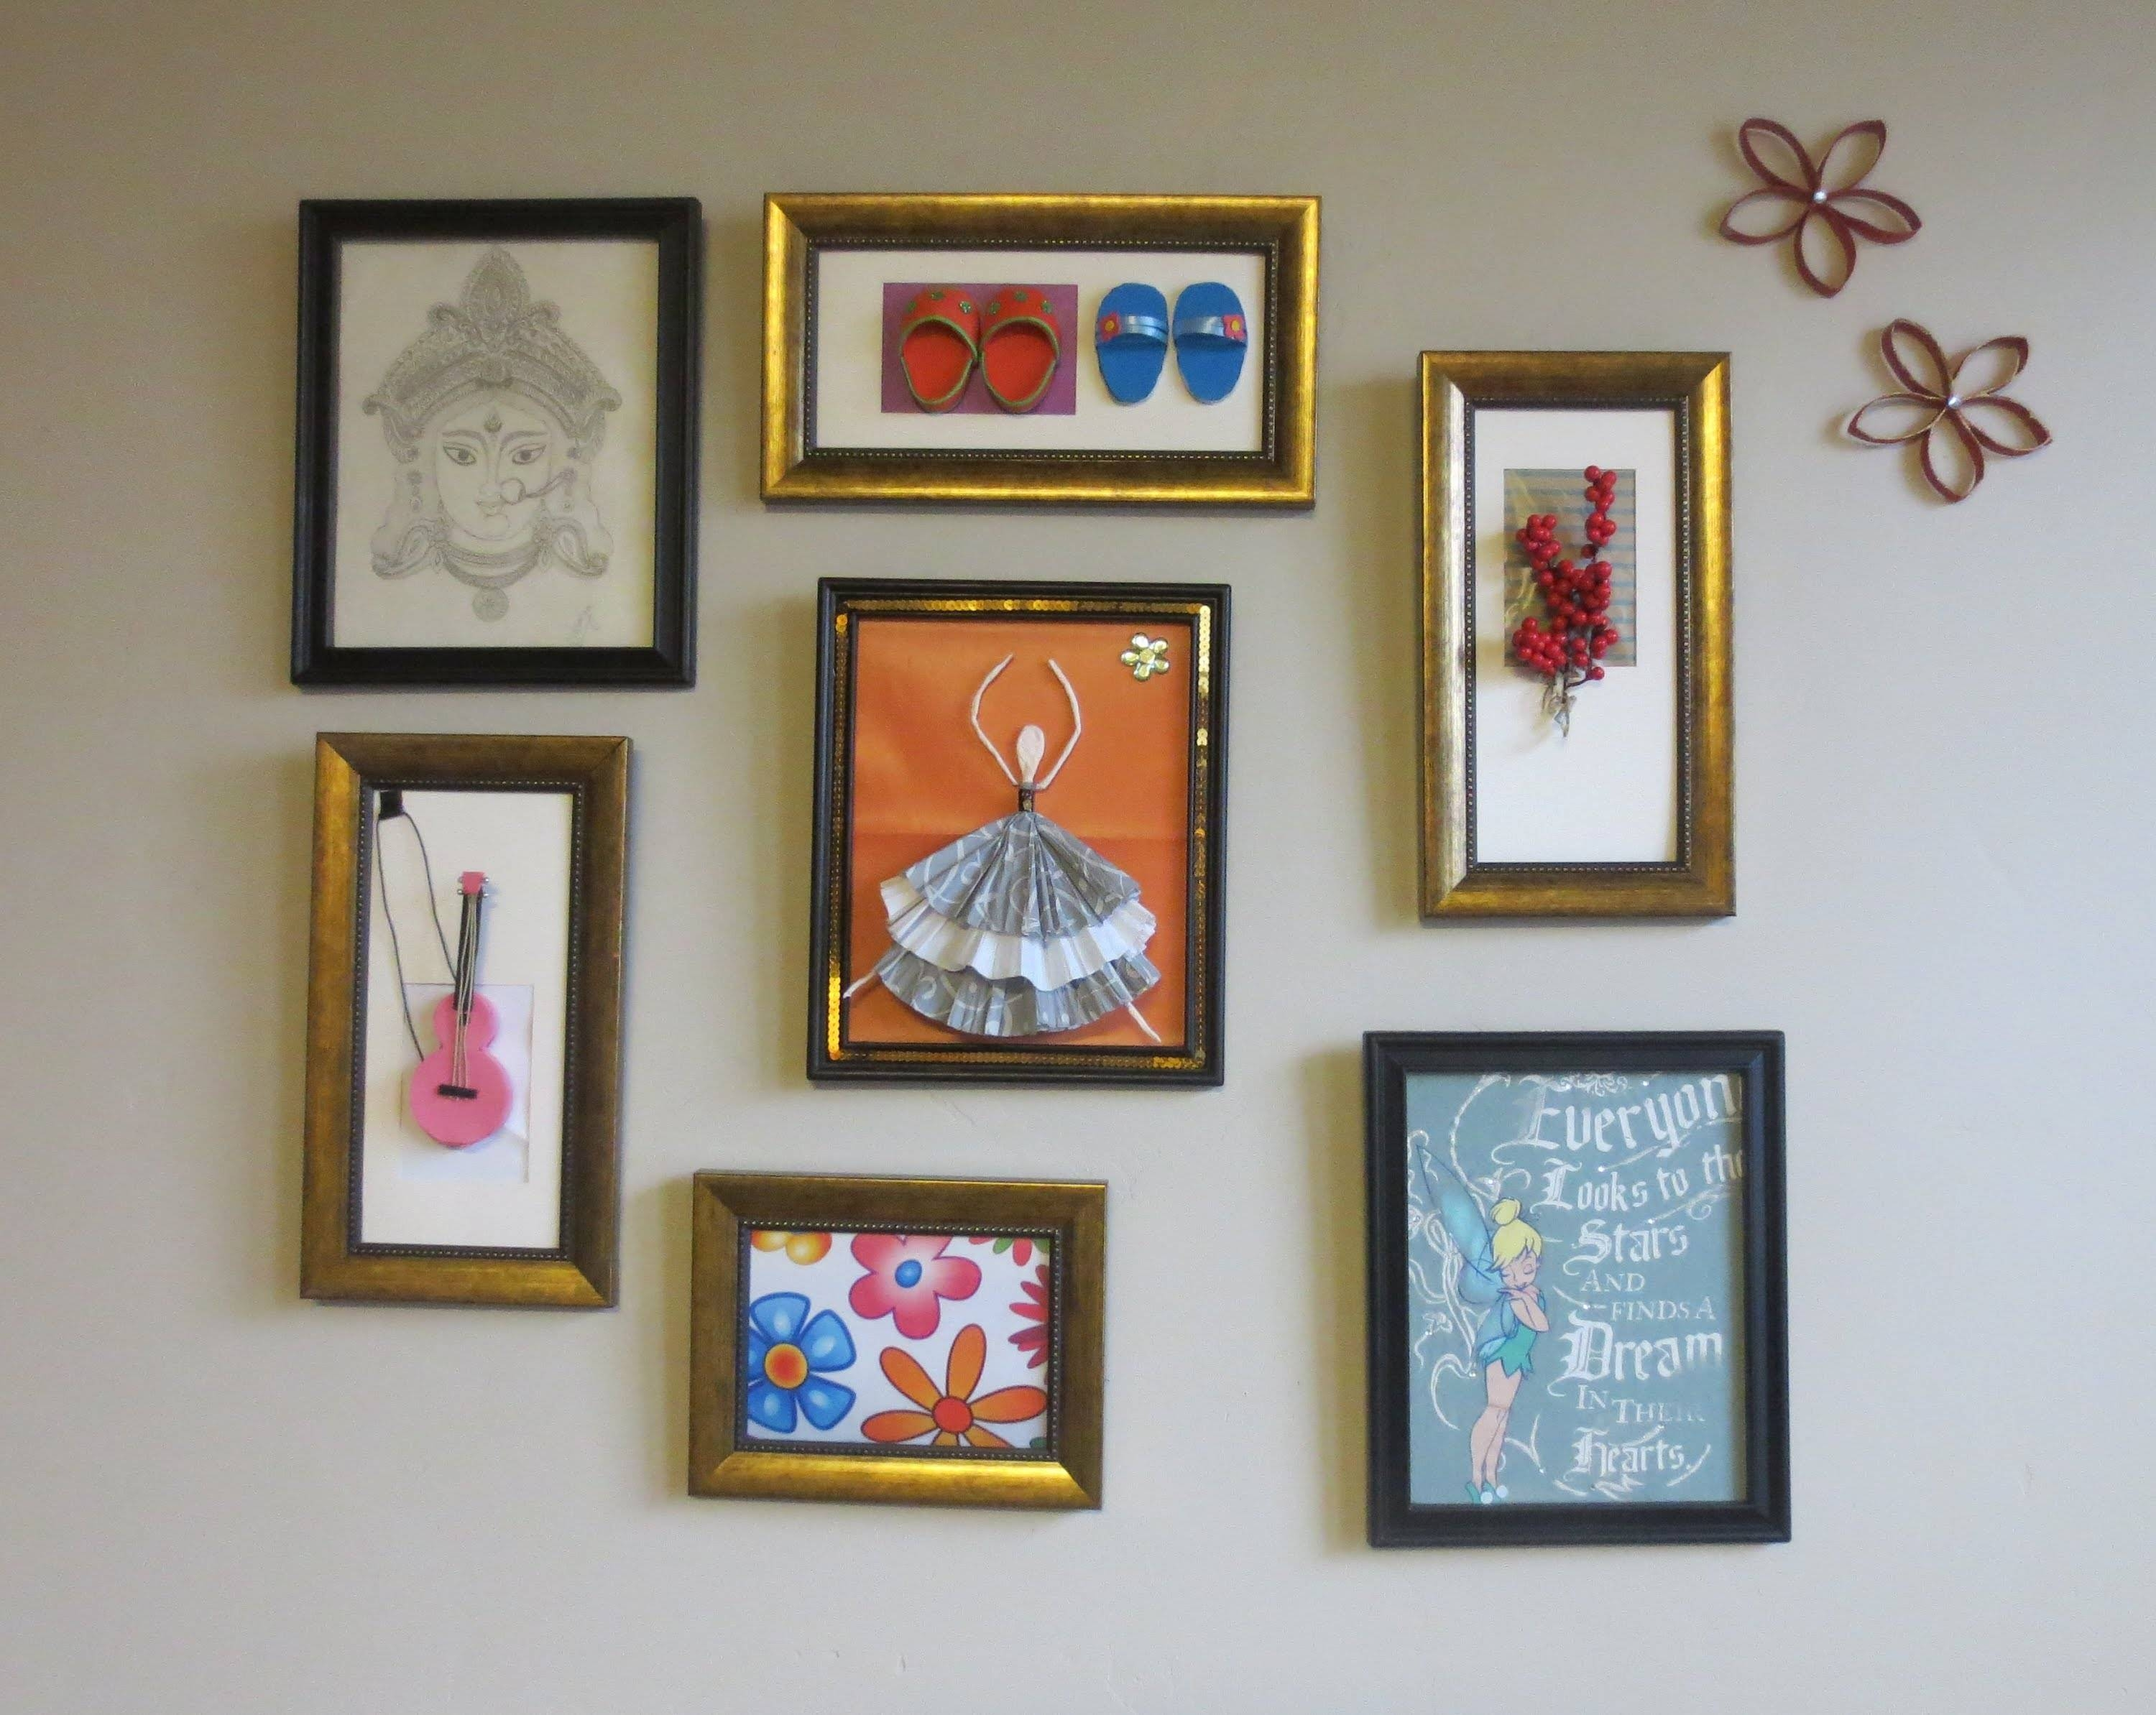 Home Decor : Tshirt Graphic & 3D Wall Art Picture Frame Collage Intended For Best And Newest Framed 3D Wall Art (Gallery 1 of 20)